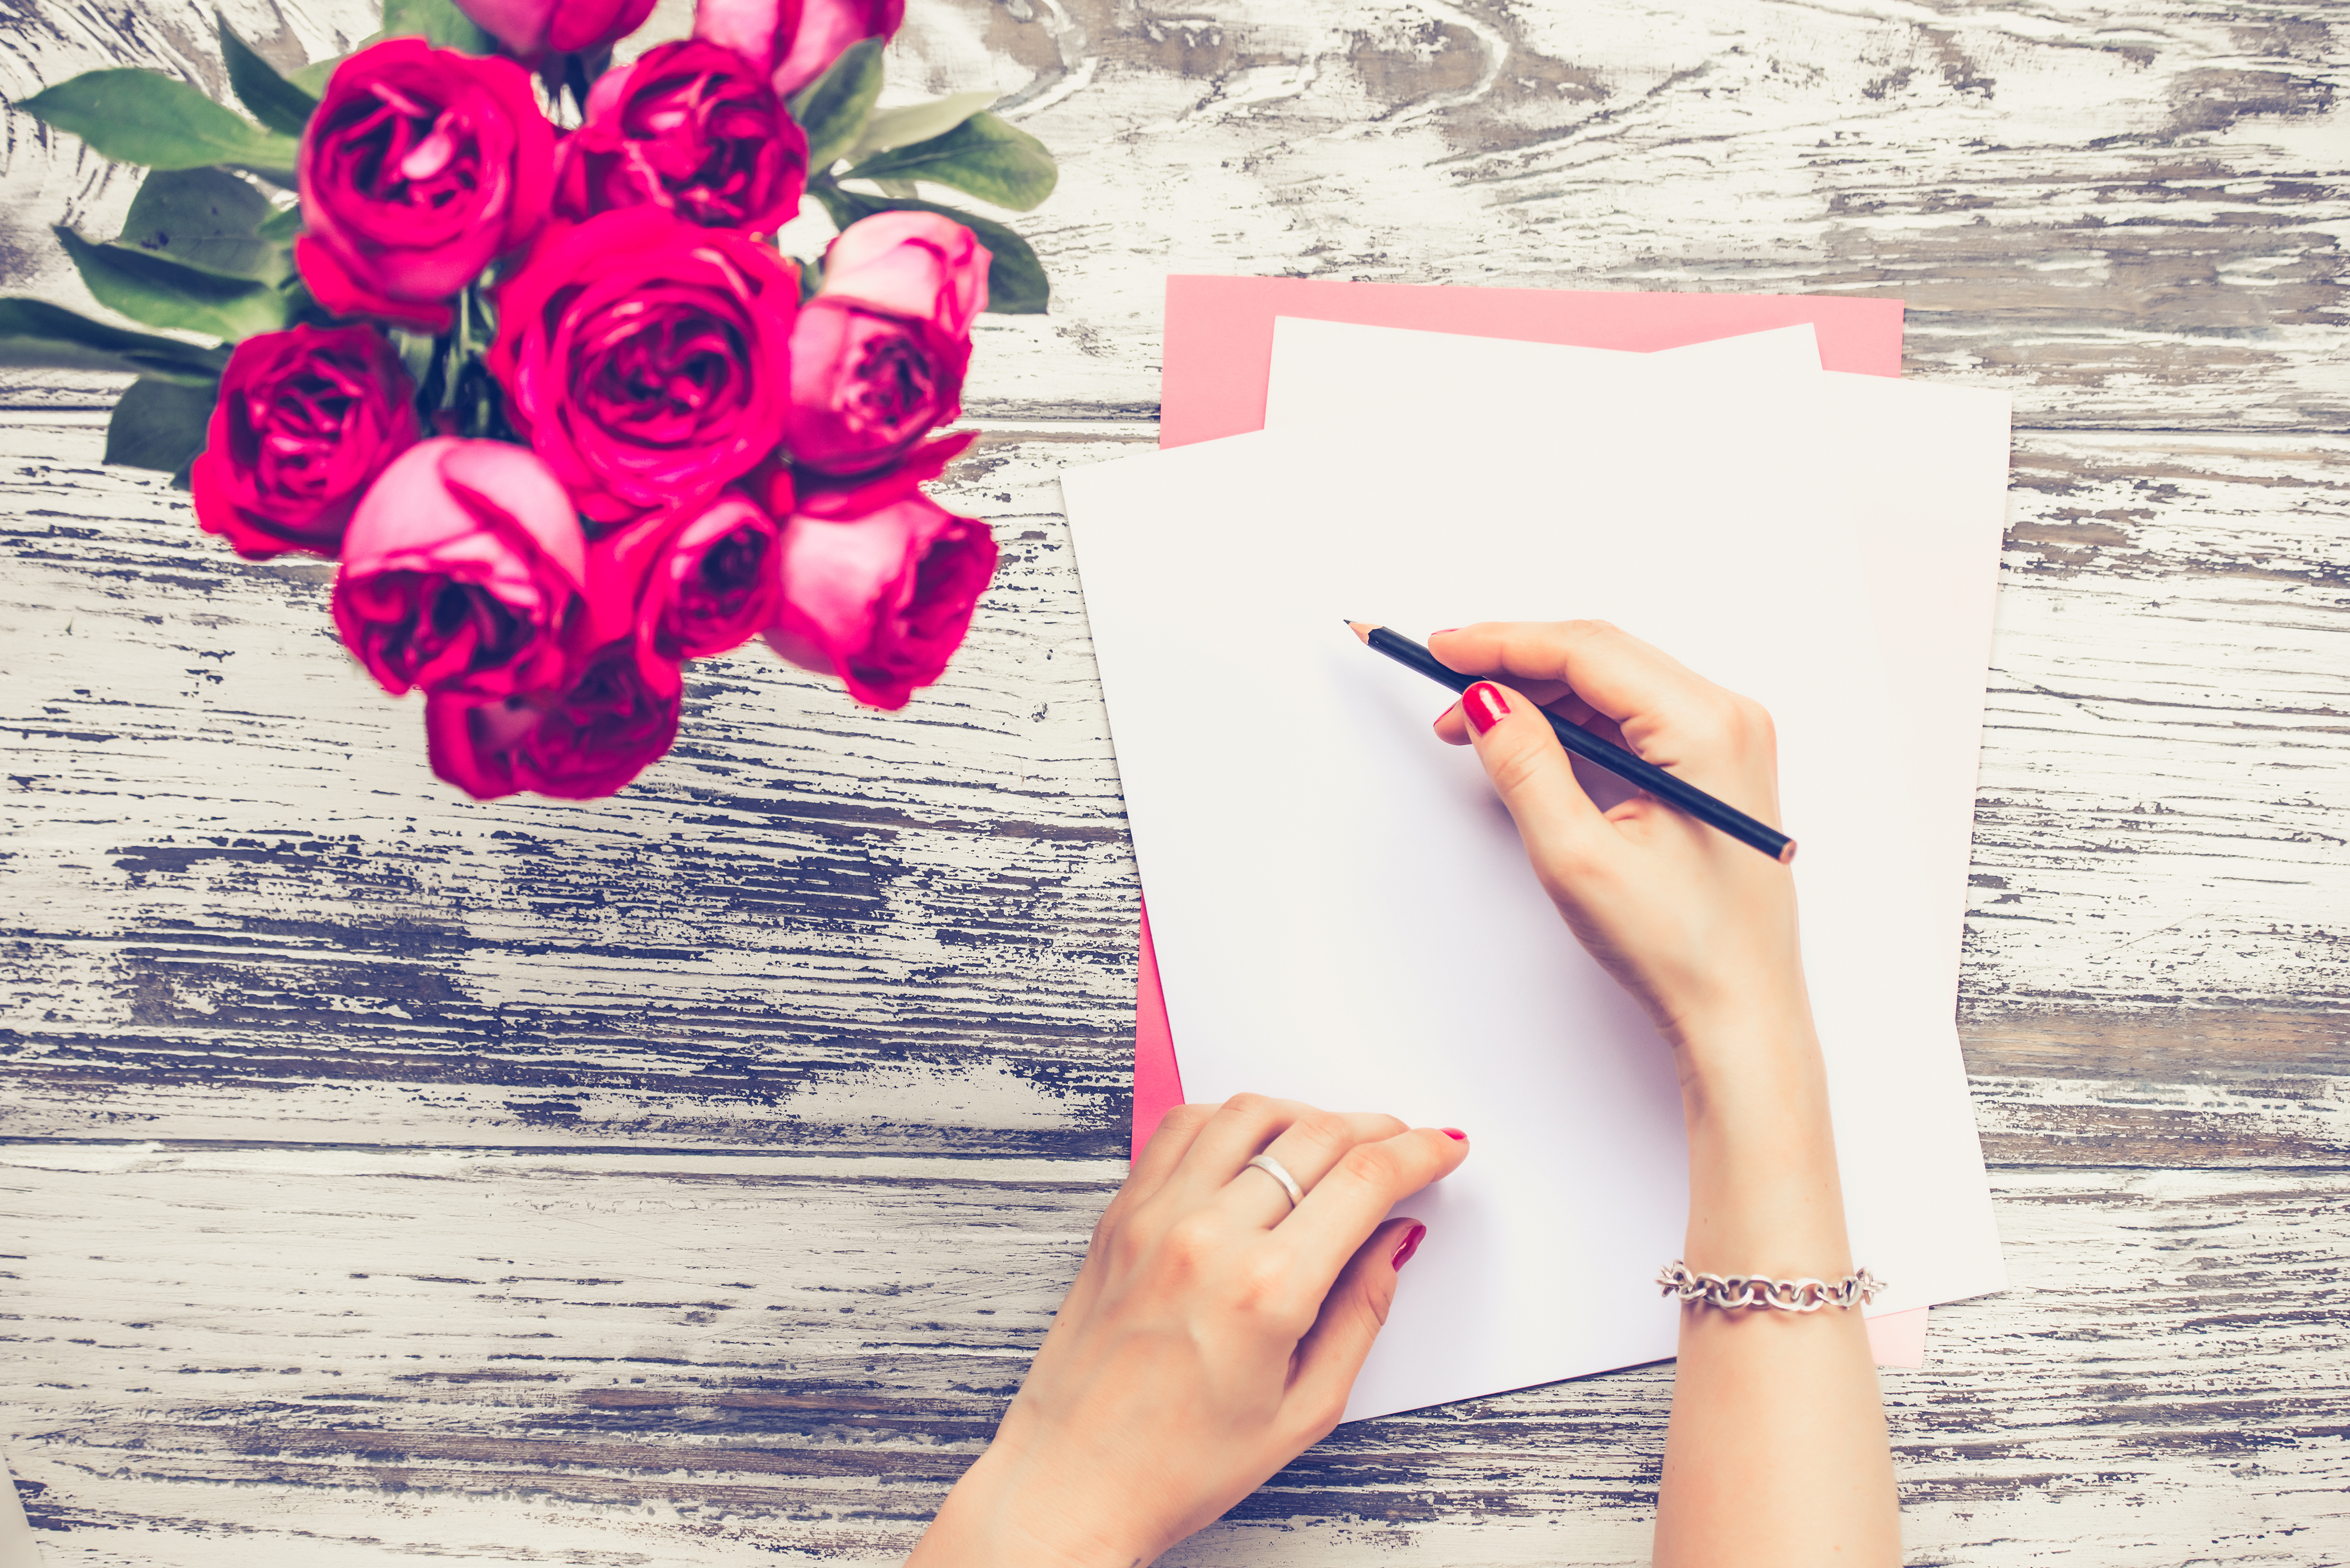 Study Shows That Open Letters Just As Important To Relationships As Real Life Commitment -- Boyfriends Not Embarrassed By Public Displays Of Love